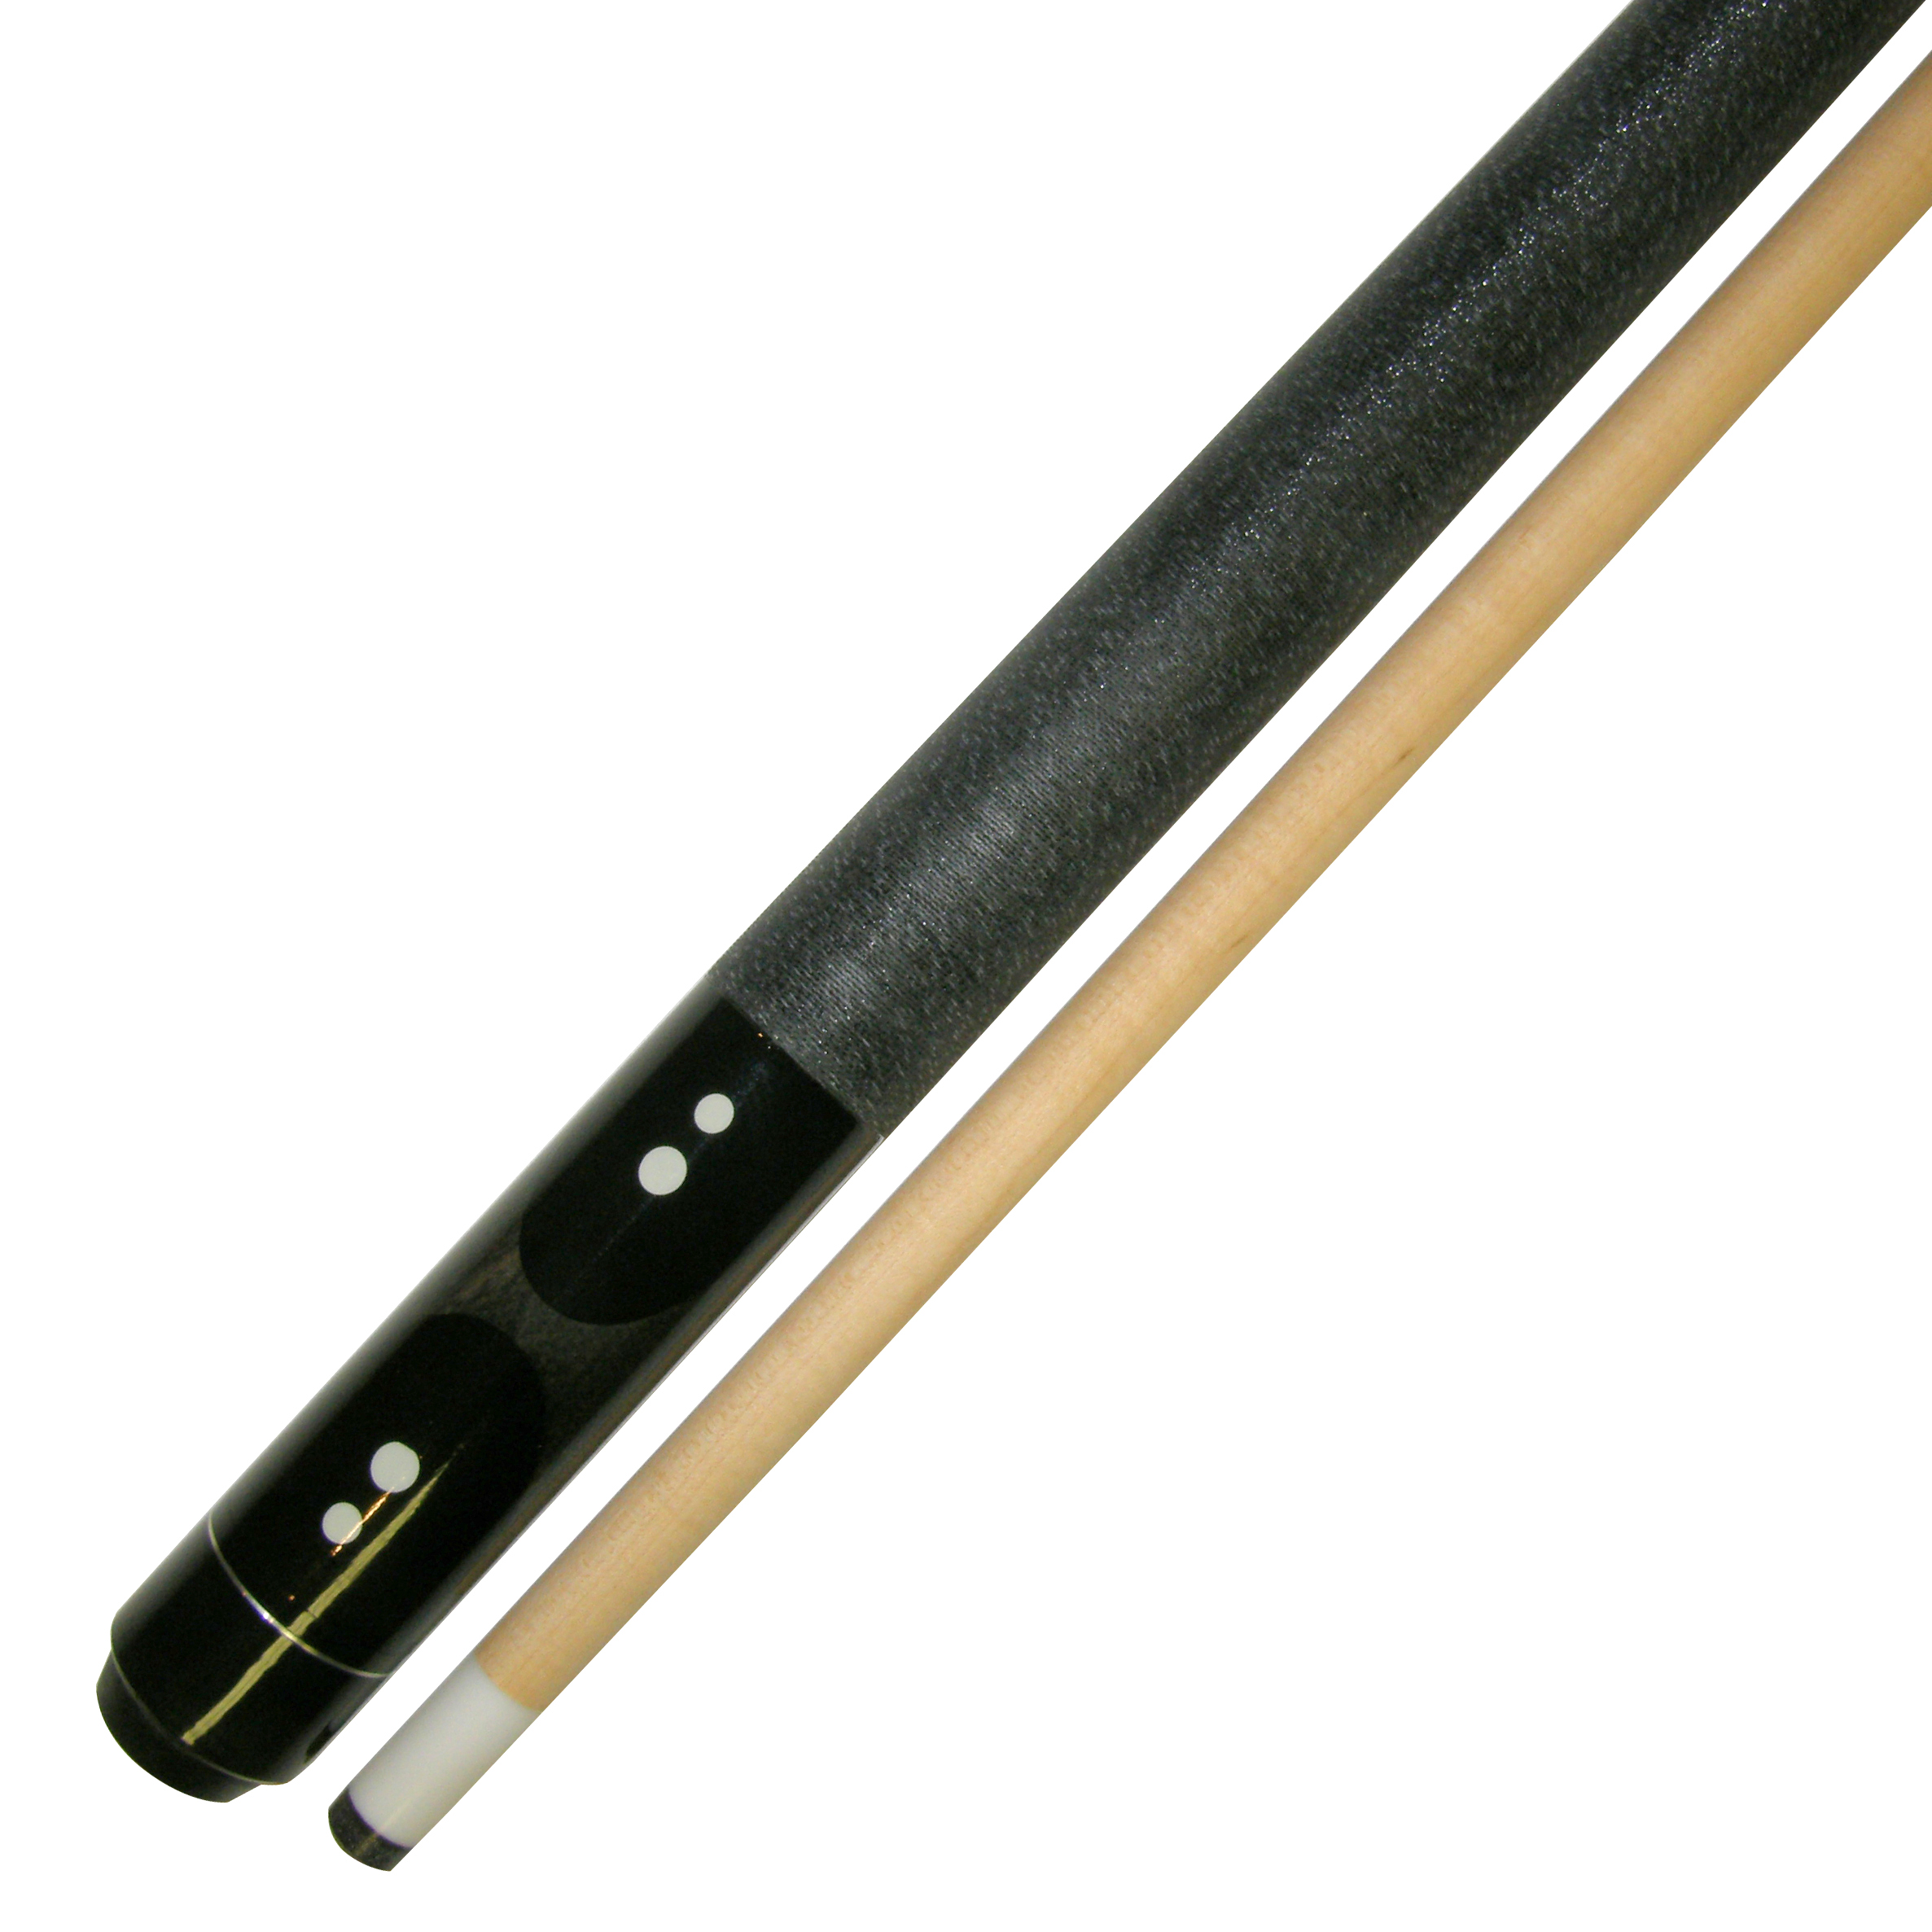 "58"" 2 Piece Hardwood Canadian Maple Billiard Pool Cue Stick 18 Ounce Black Gray by"